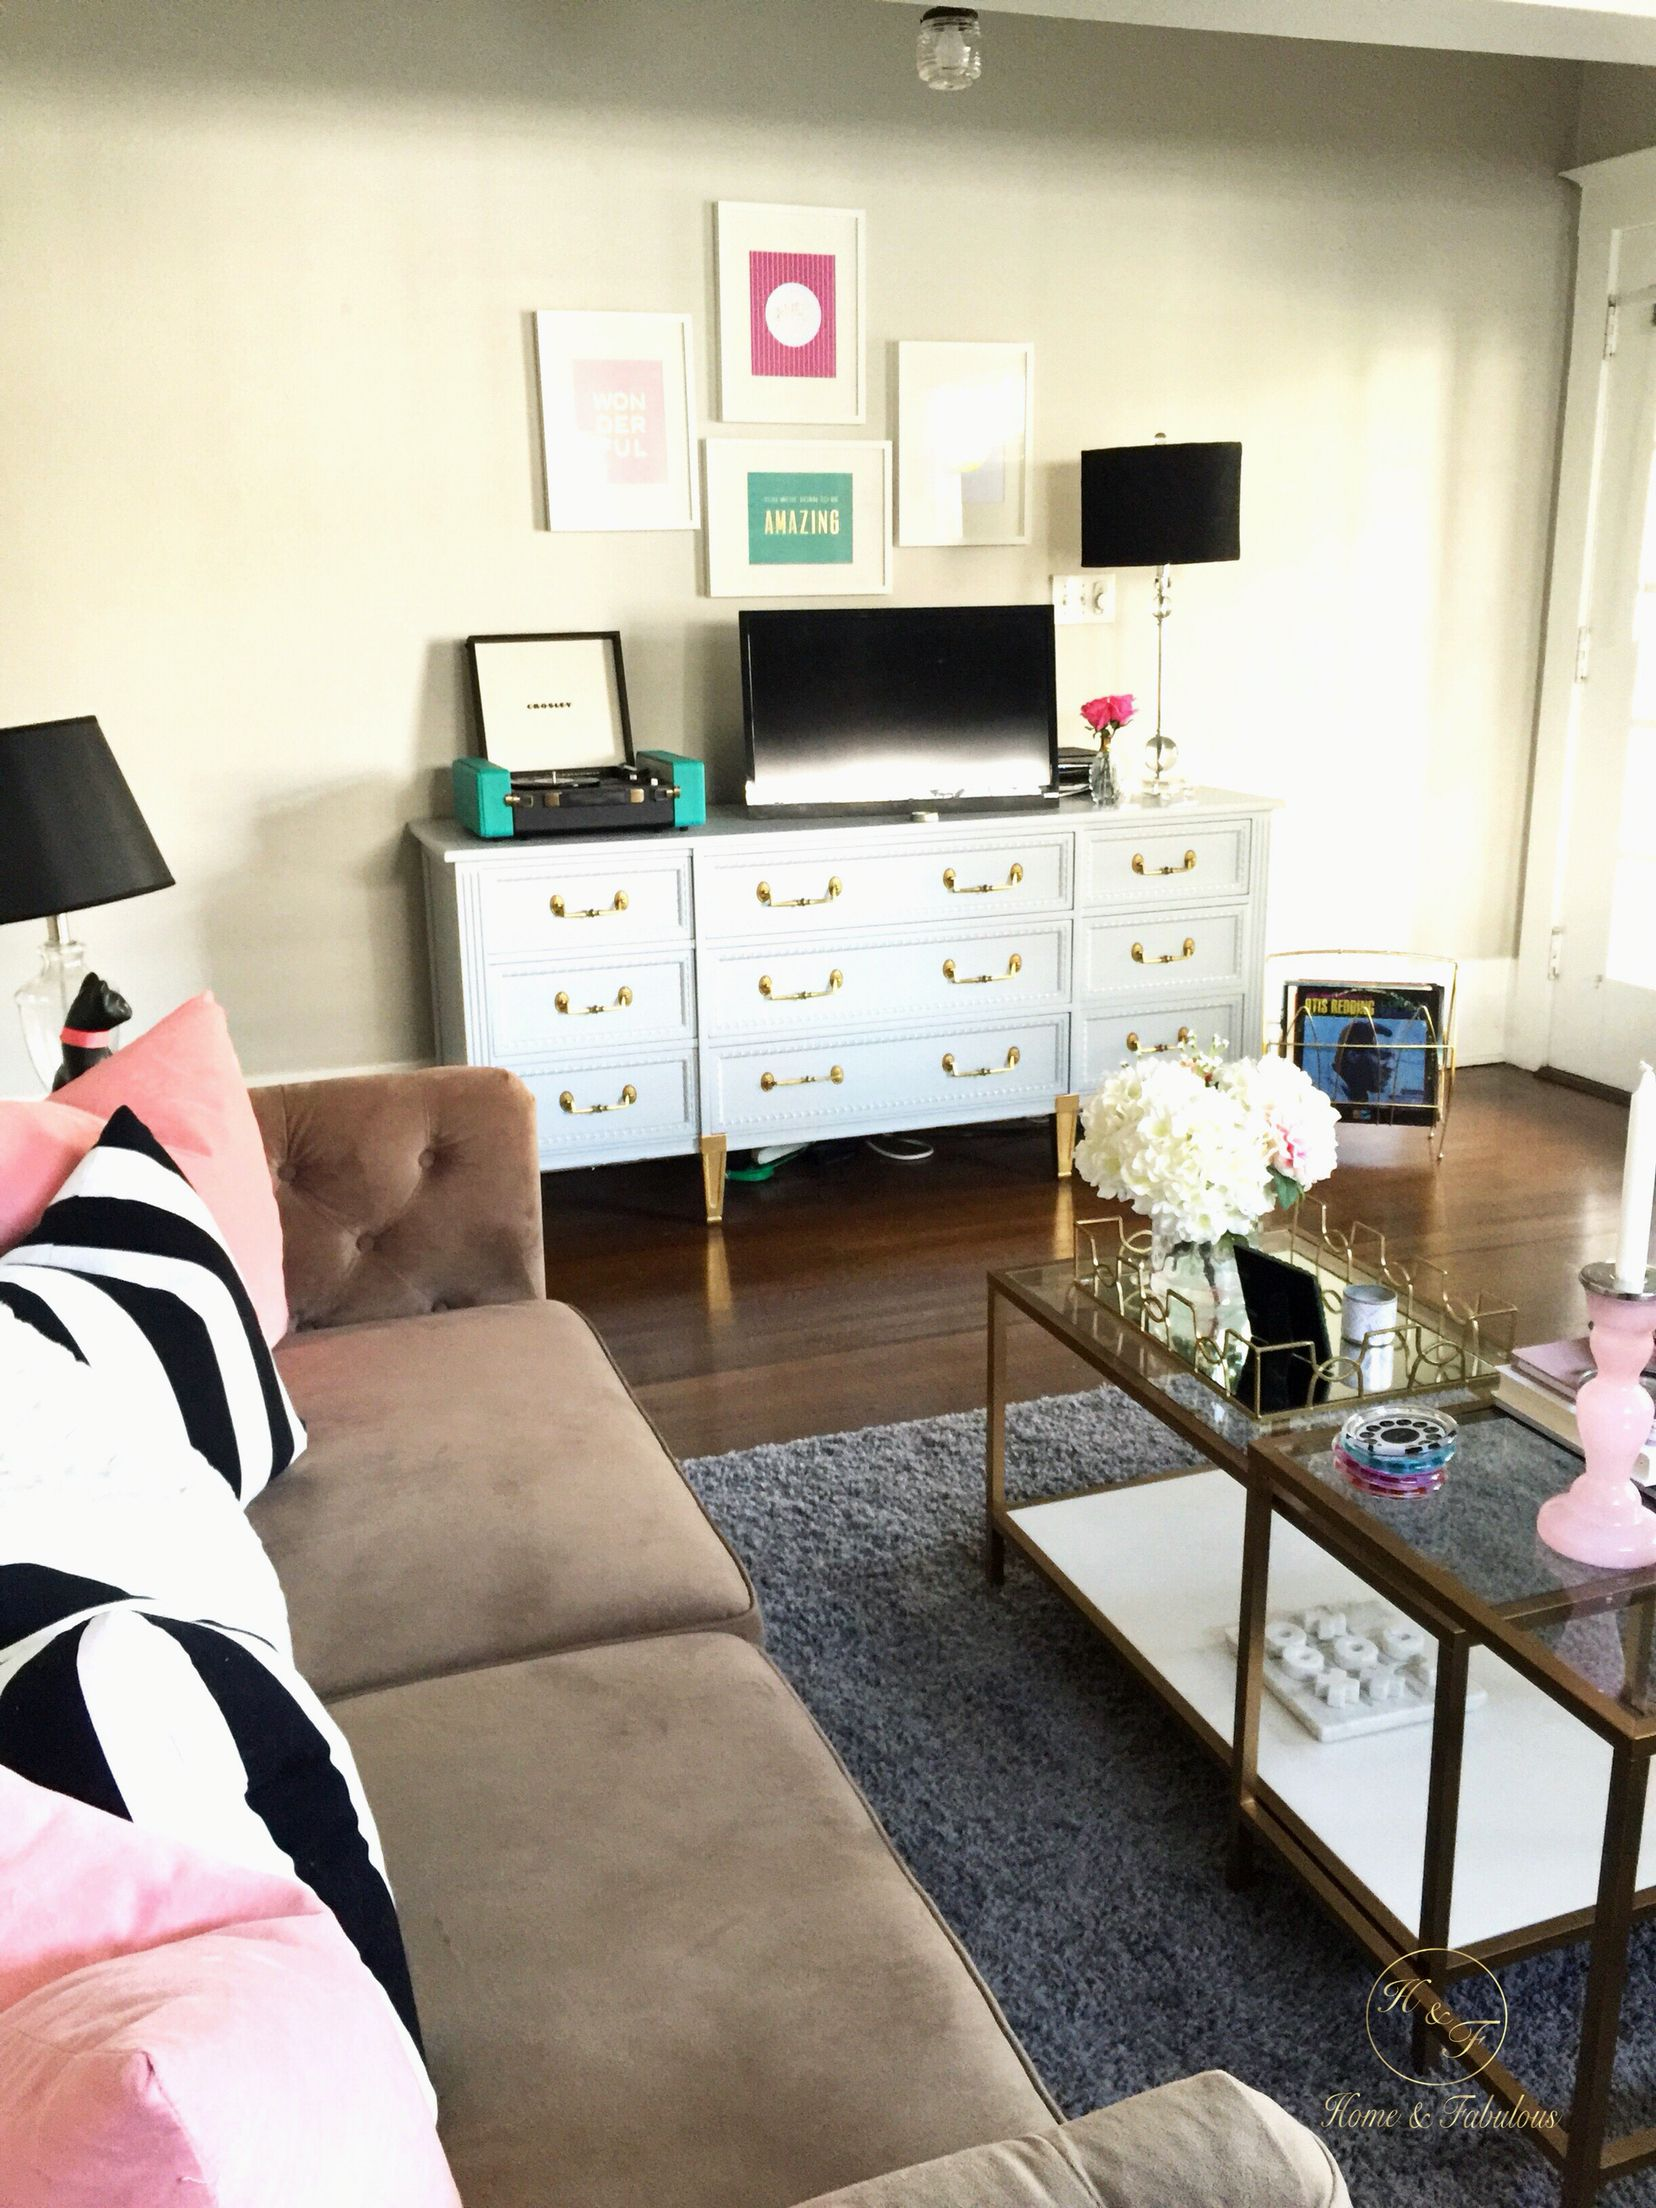 Home And Fabulous Girly Apartments Apartment Decor Kitchen